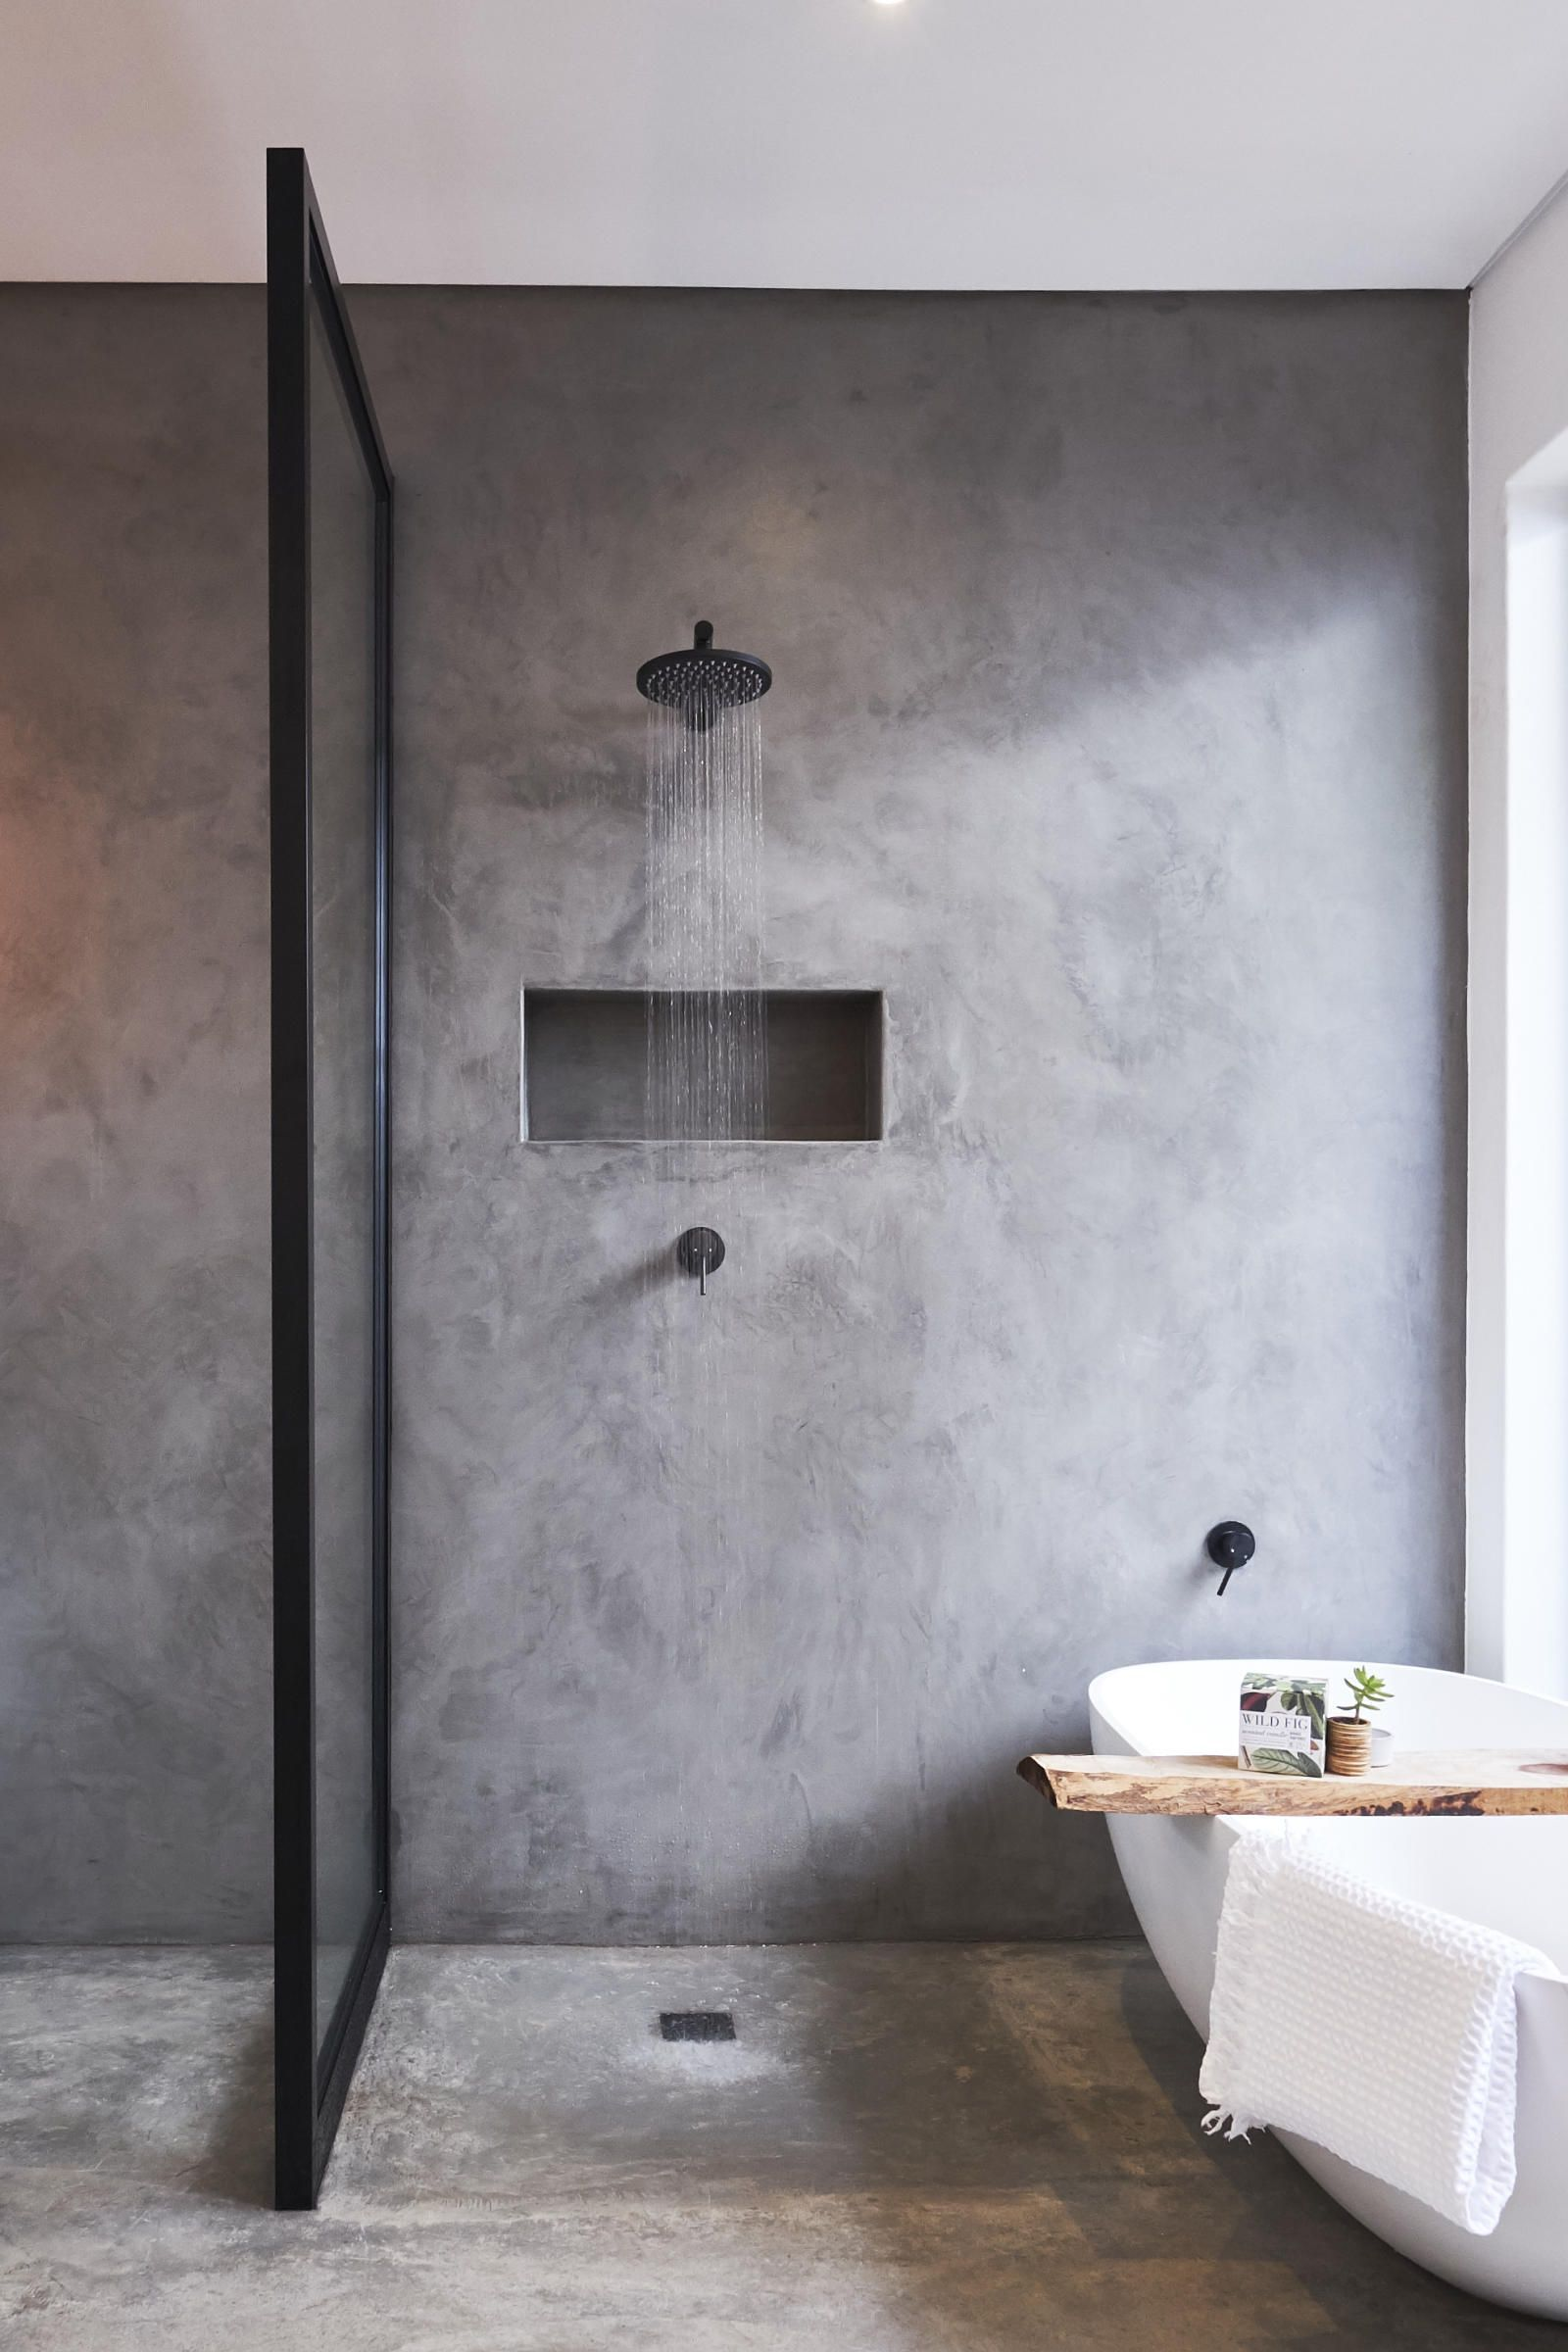 Meir Black Wall Mounted Shower Wall Mixers Shower Grate